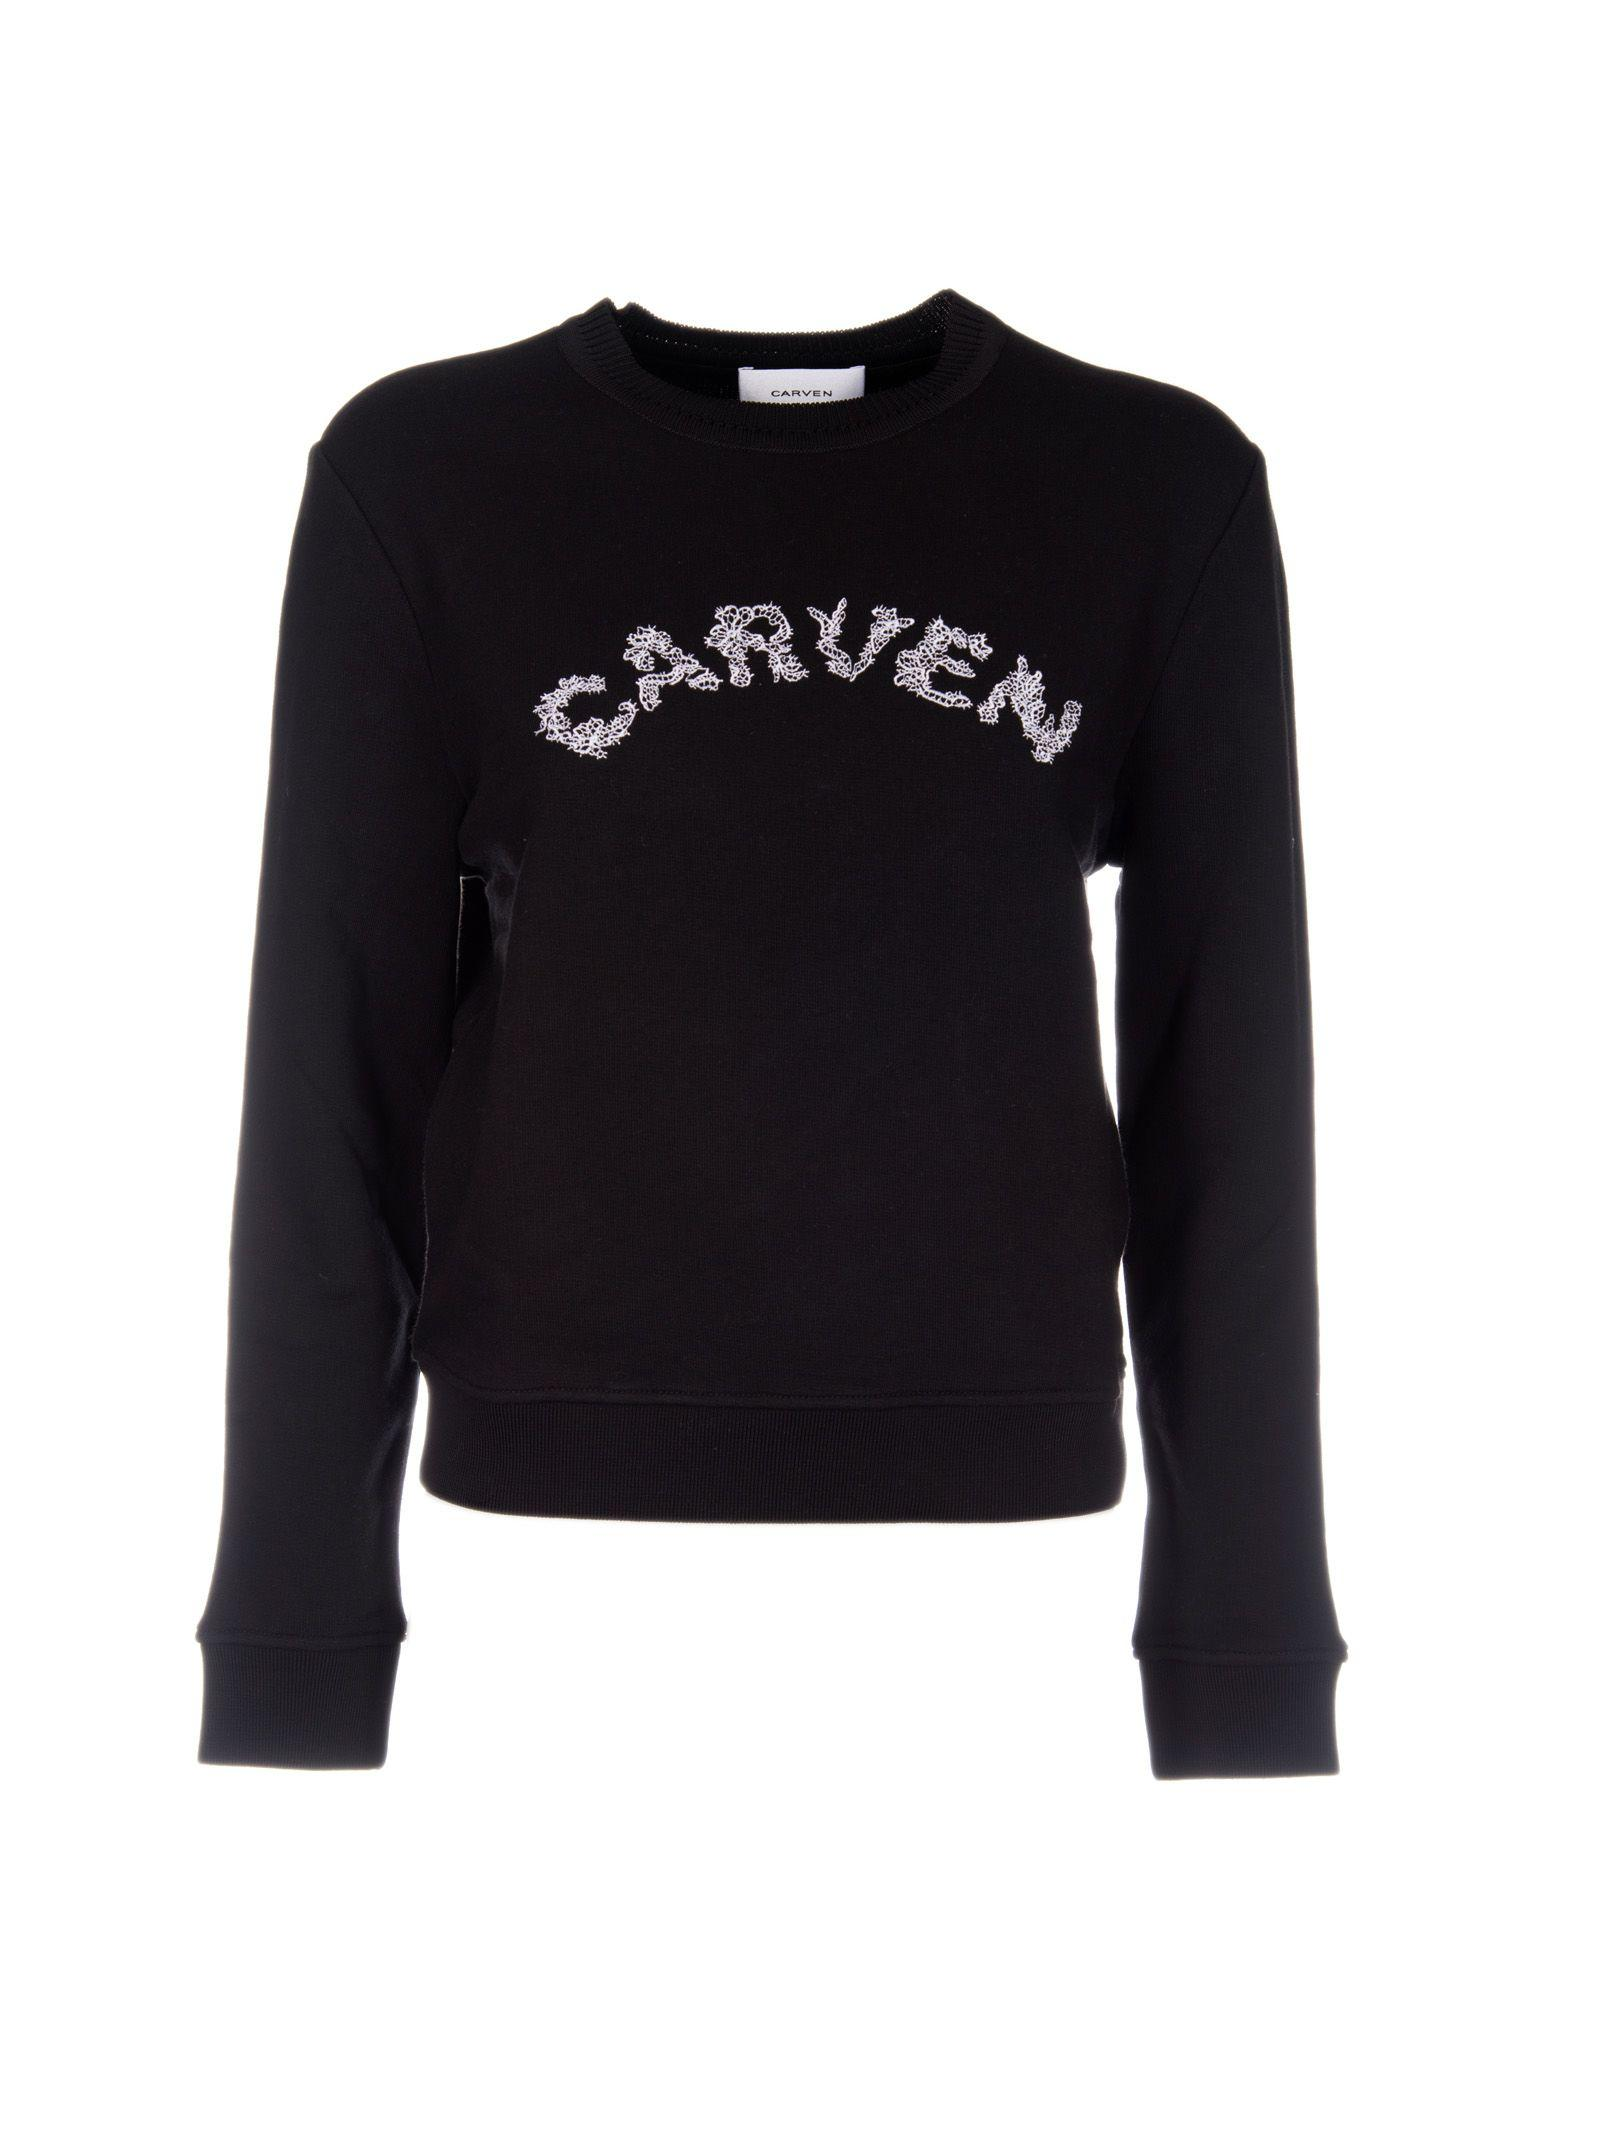 Carven Logo Sweatshirt In Black